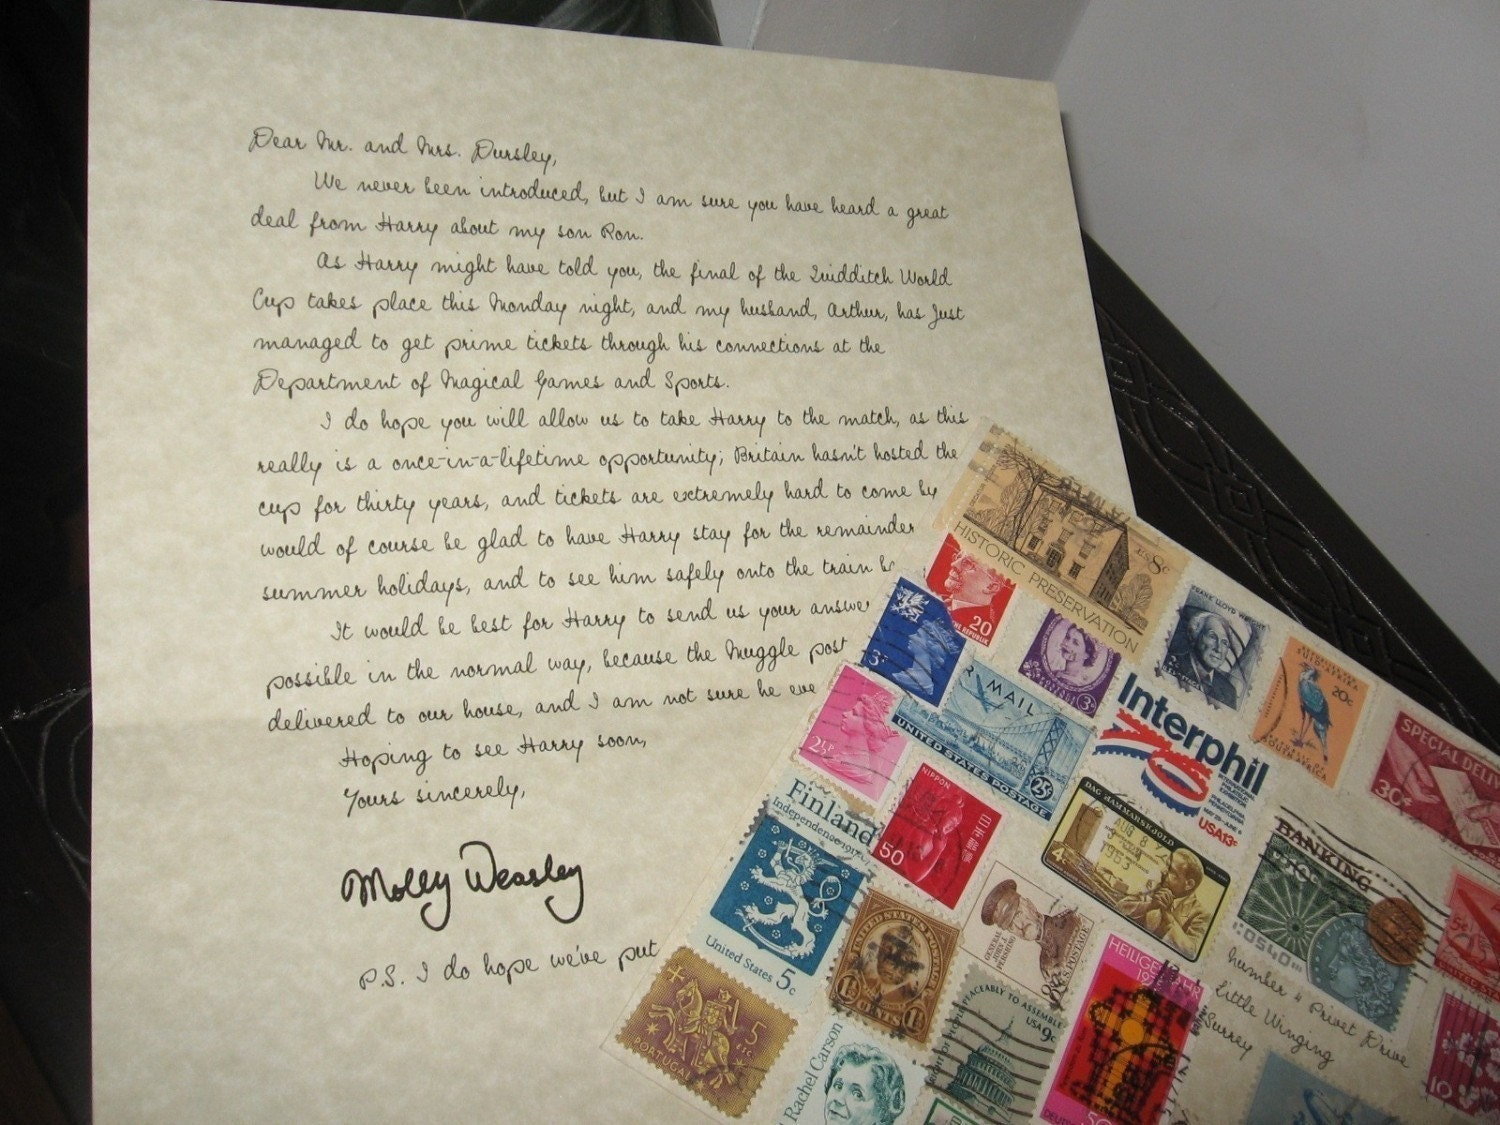 Quidditch World Cup Invitation from Molly Weasley to Harry Potter, Goblet of Fire